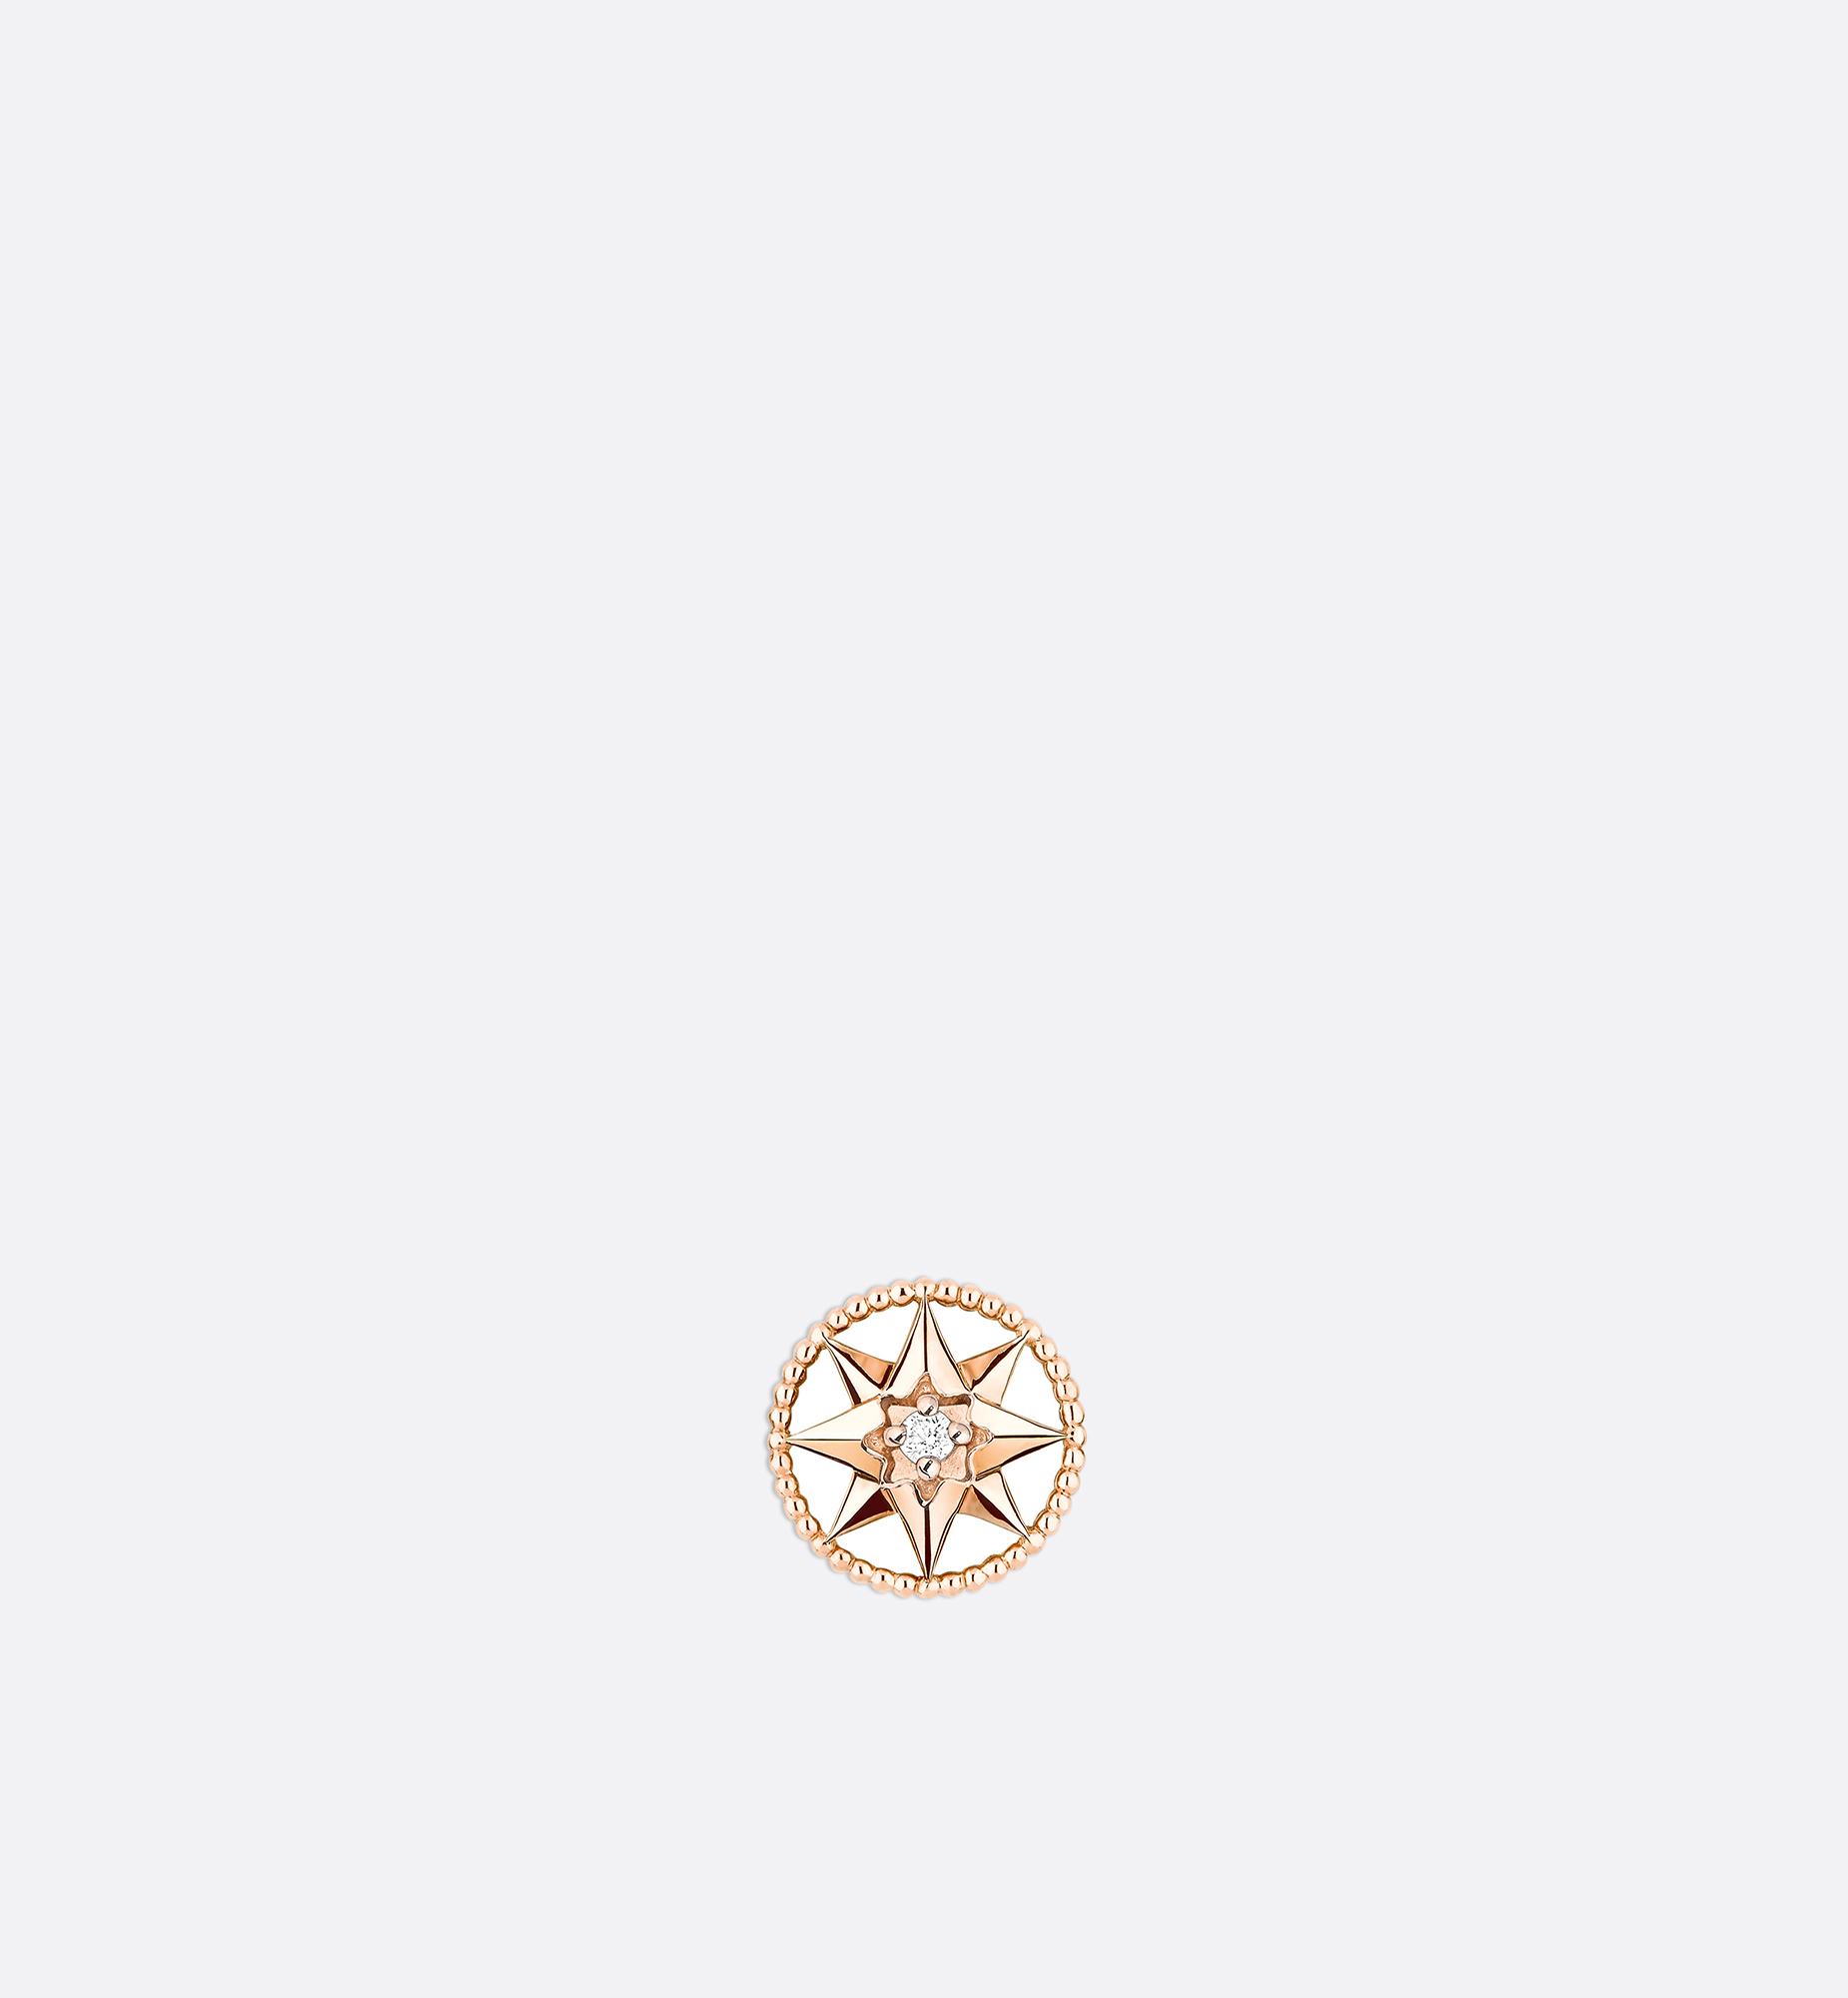 Rose Des Vents XS Earring, 18k Pink Gold And Diamond